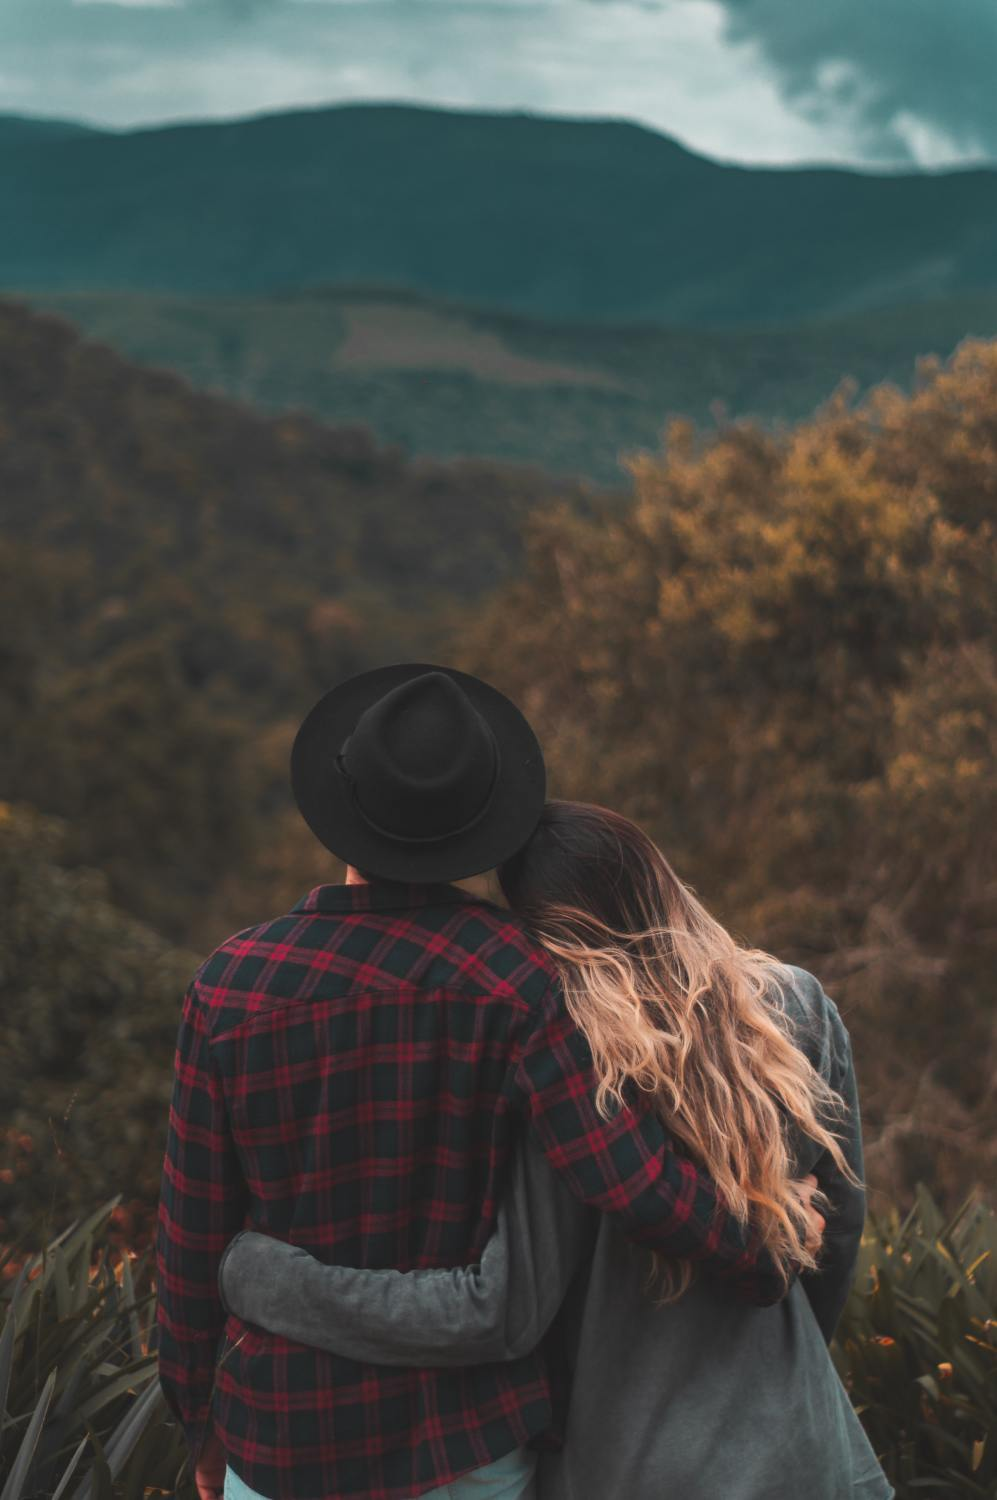 If He Doesn't Care About Your Feelings, Why Do You Care About His?